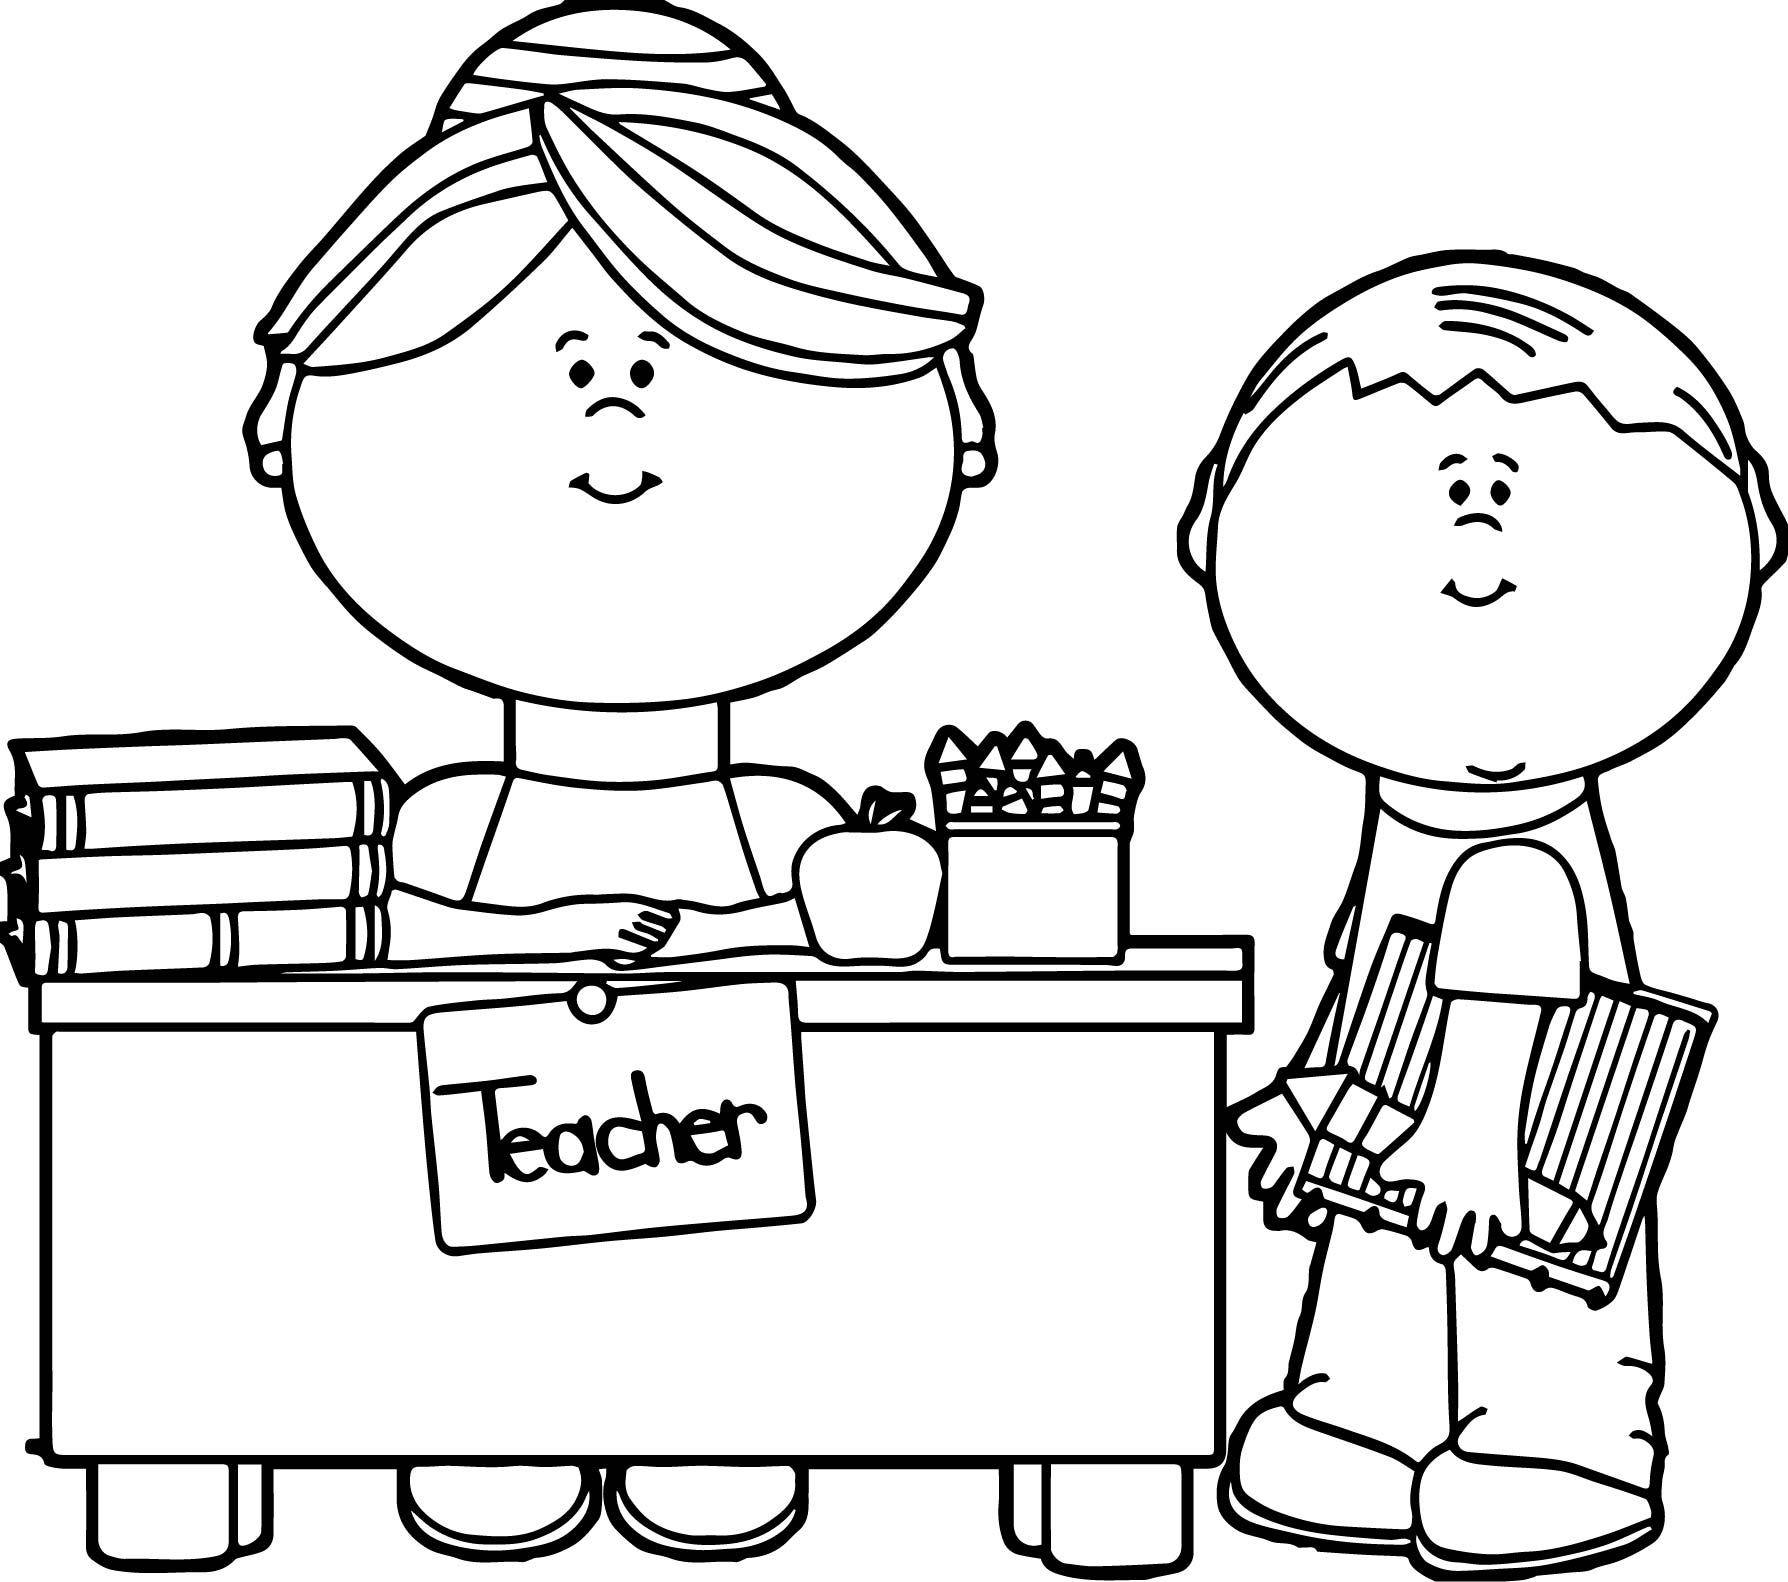 student name coloring pages - photo#23